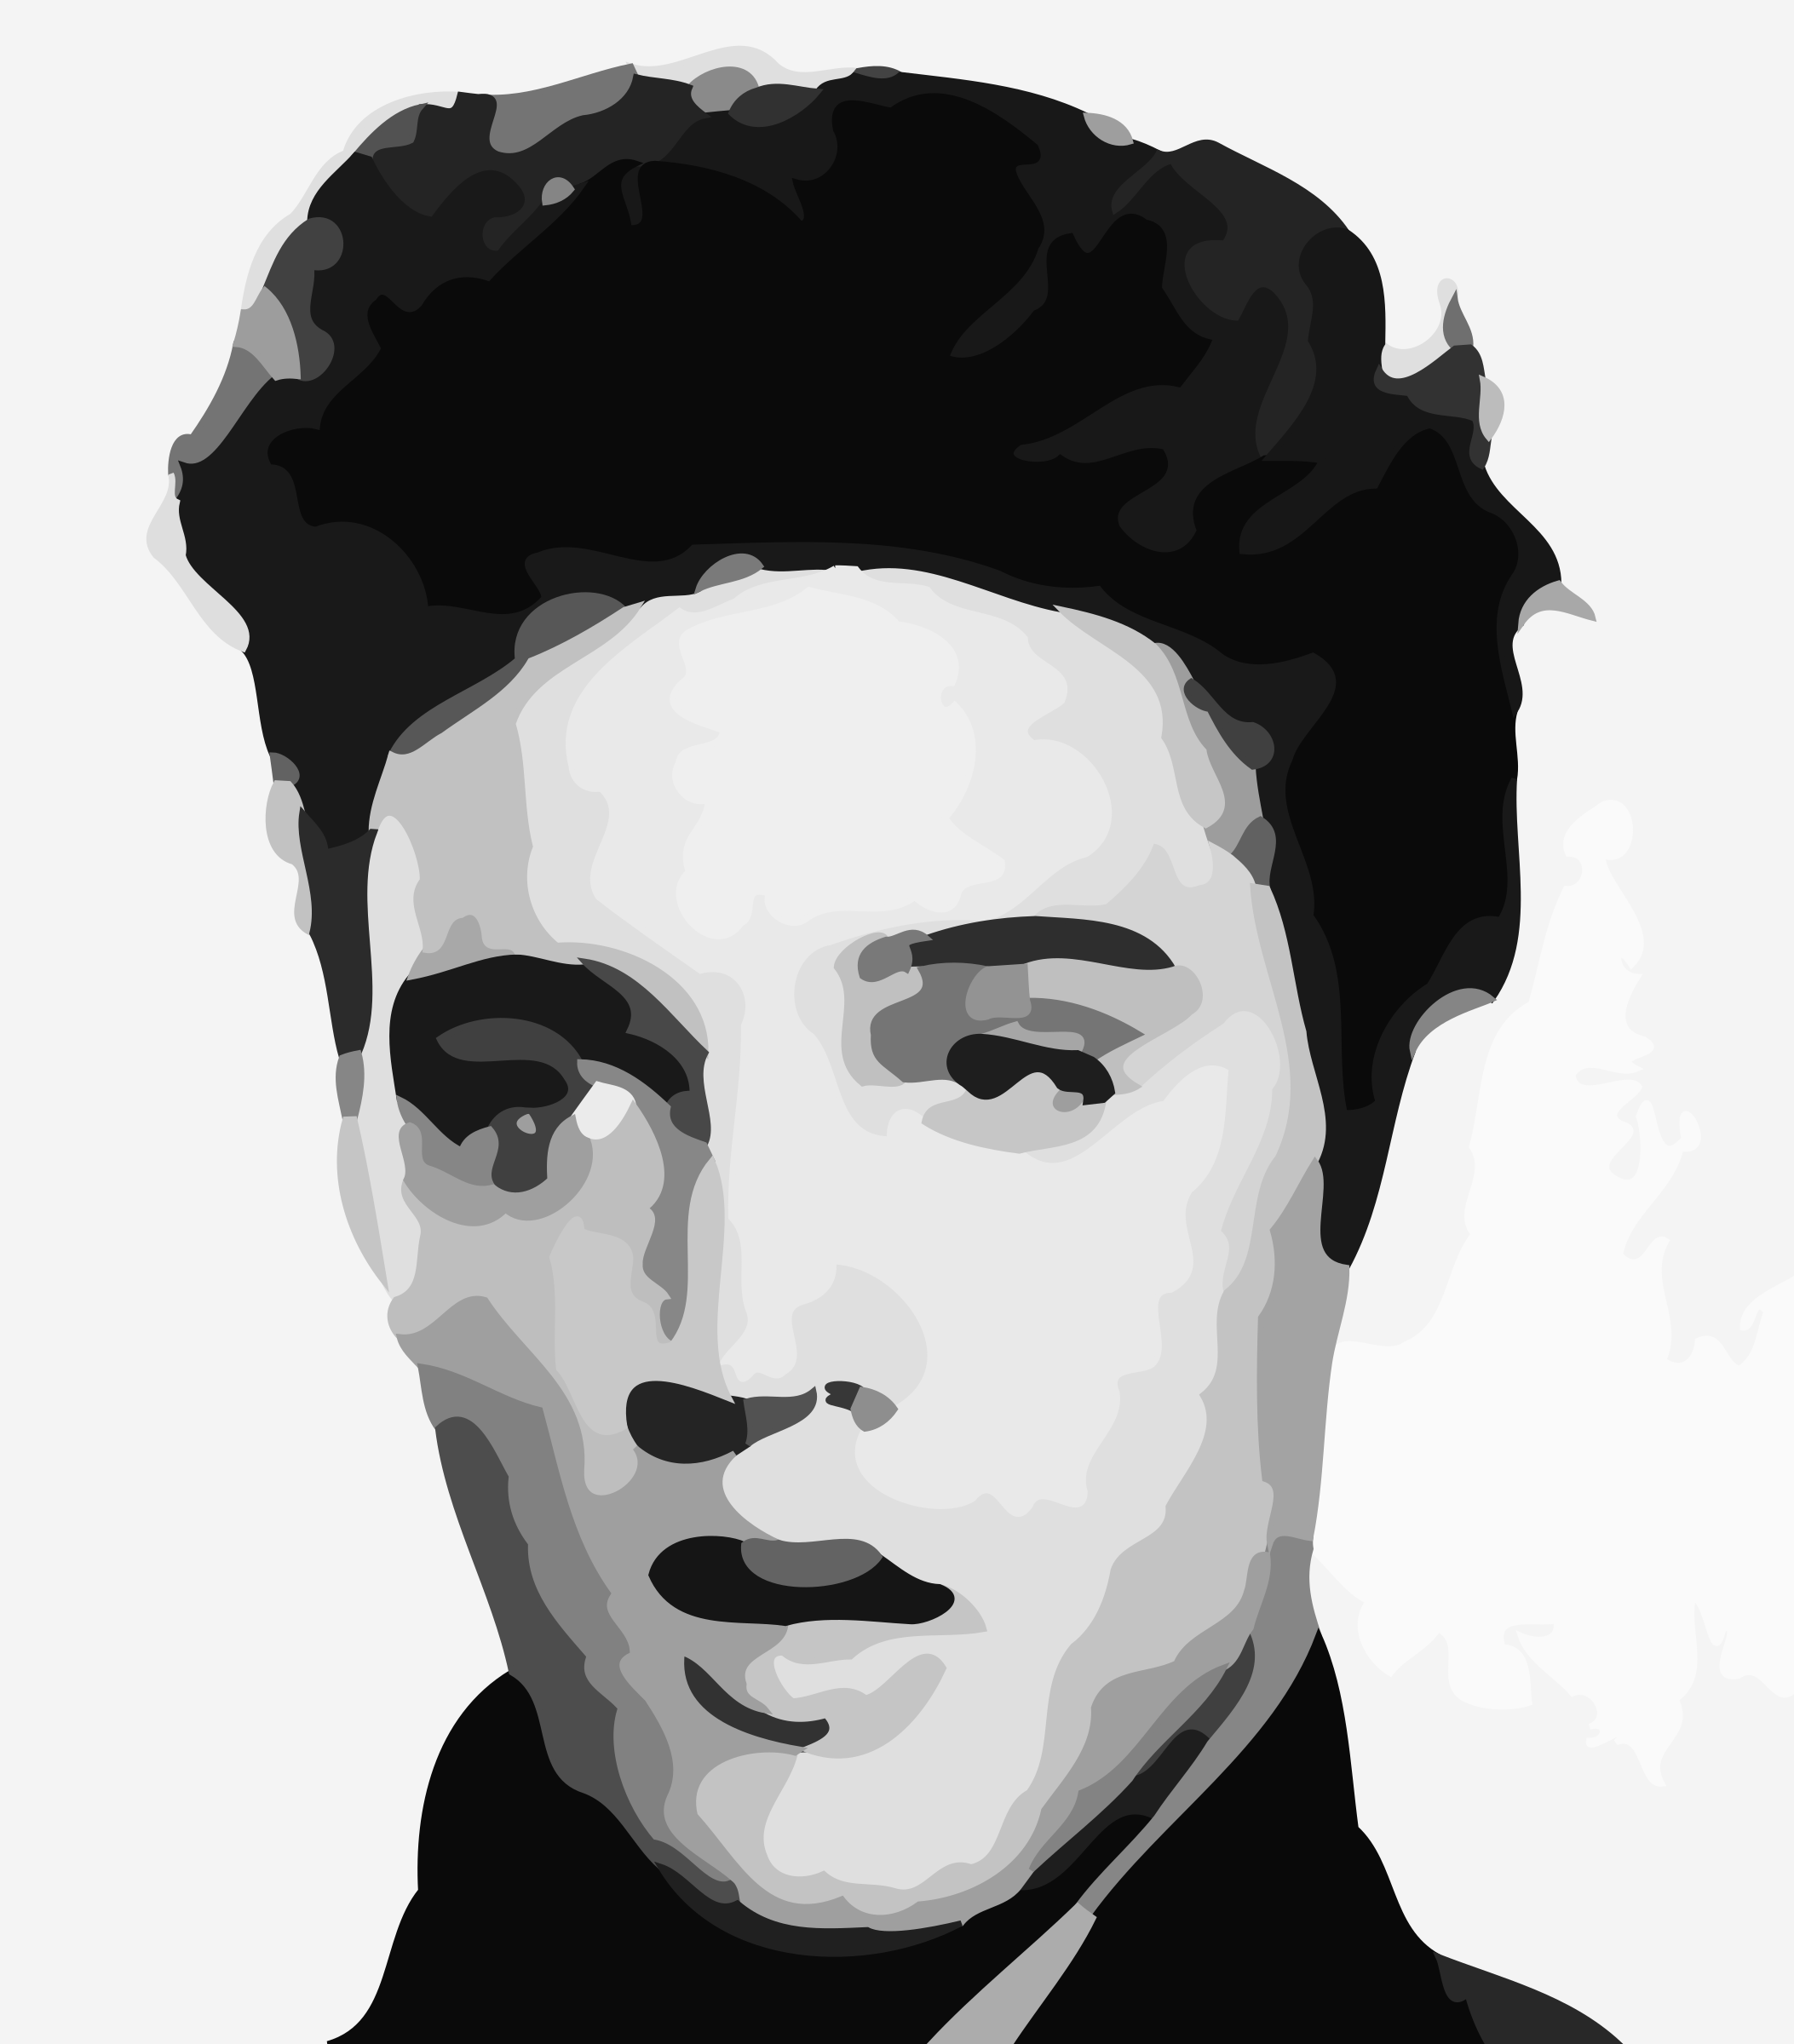 Elvis Presley by Firkin